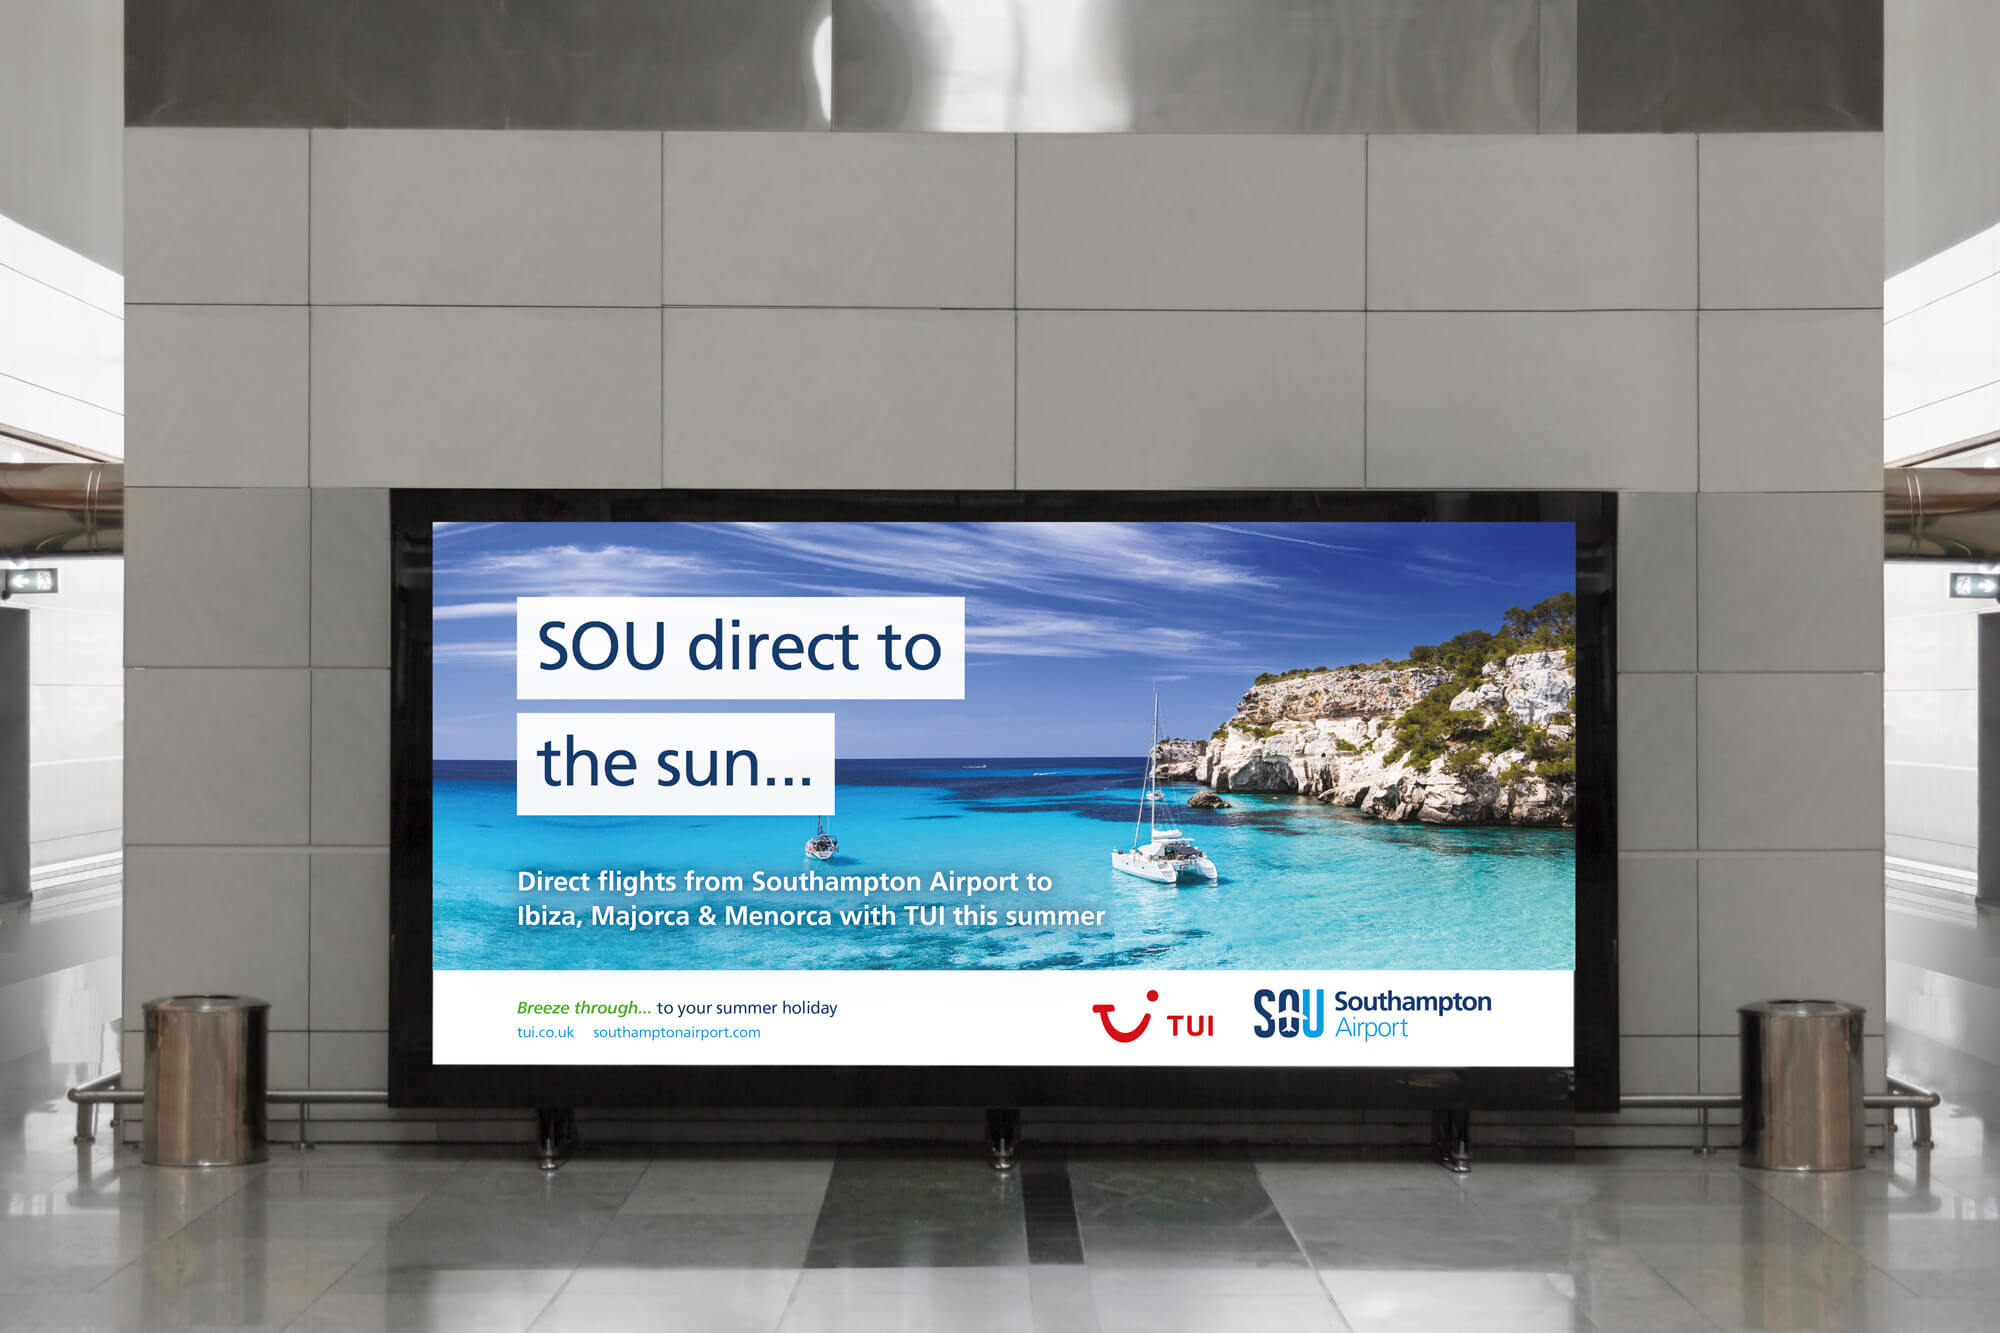 It's direct to the Balearics with Southampton Airport and TUI